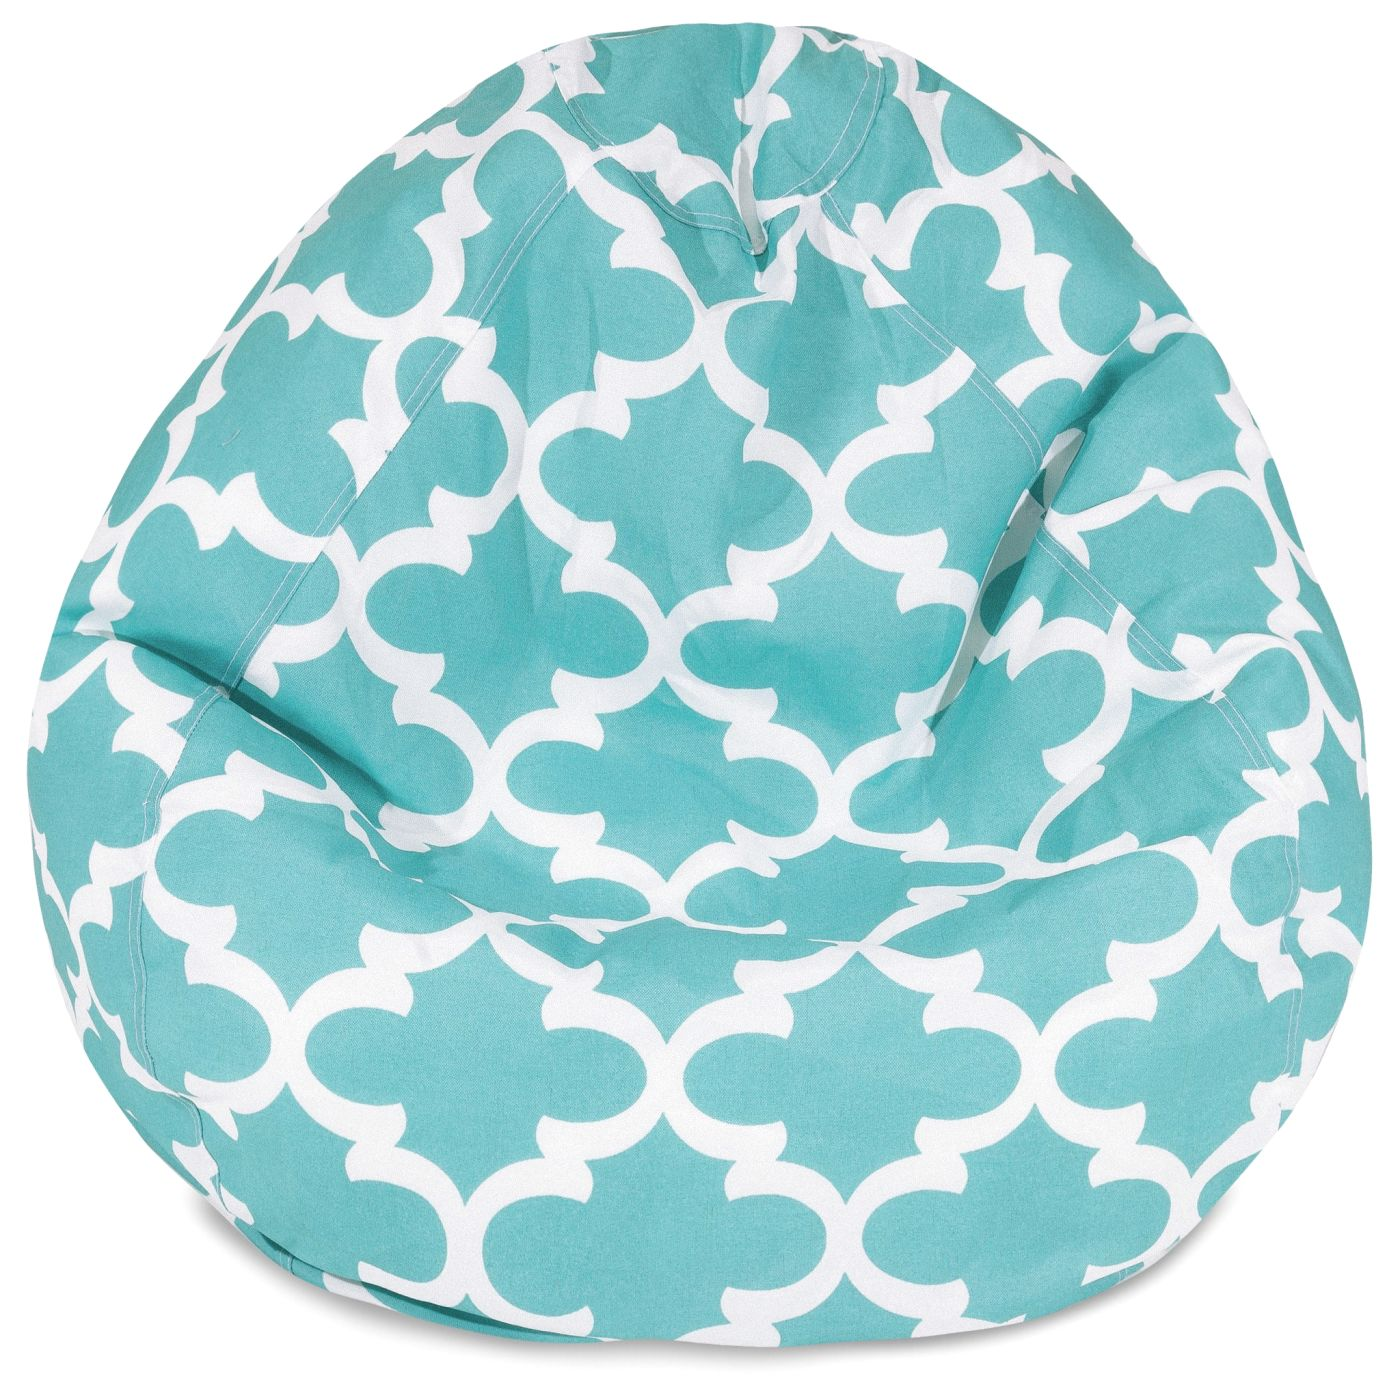 amazing deal on majestic home 85907224091 teal trellis small classic bean bag at contemporary. Black Bedroom Furniture Sets. Home Design Ideas